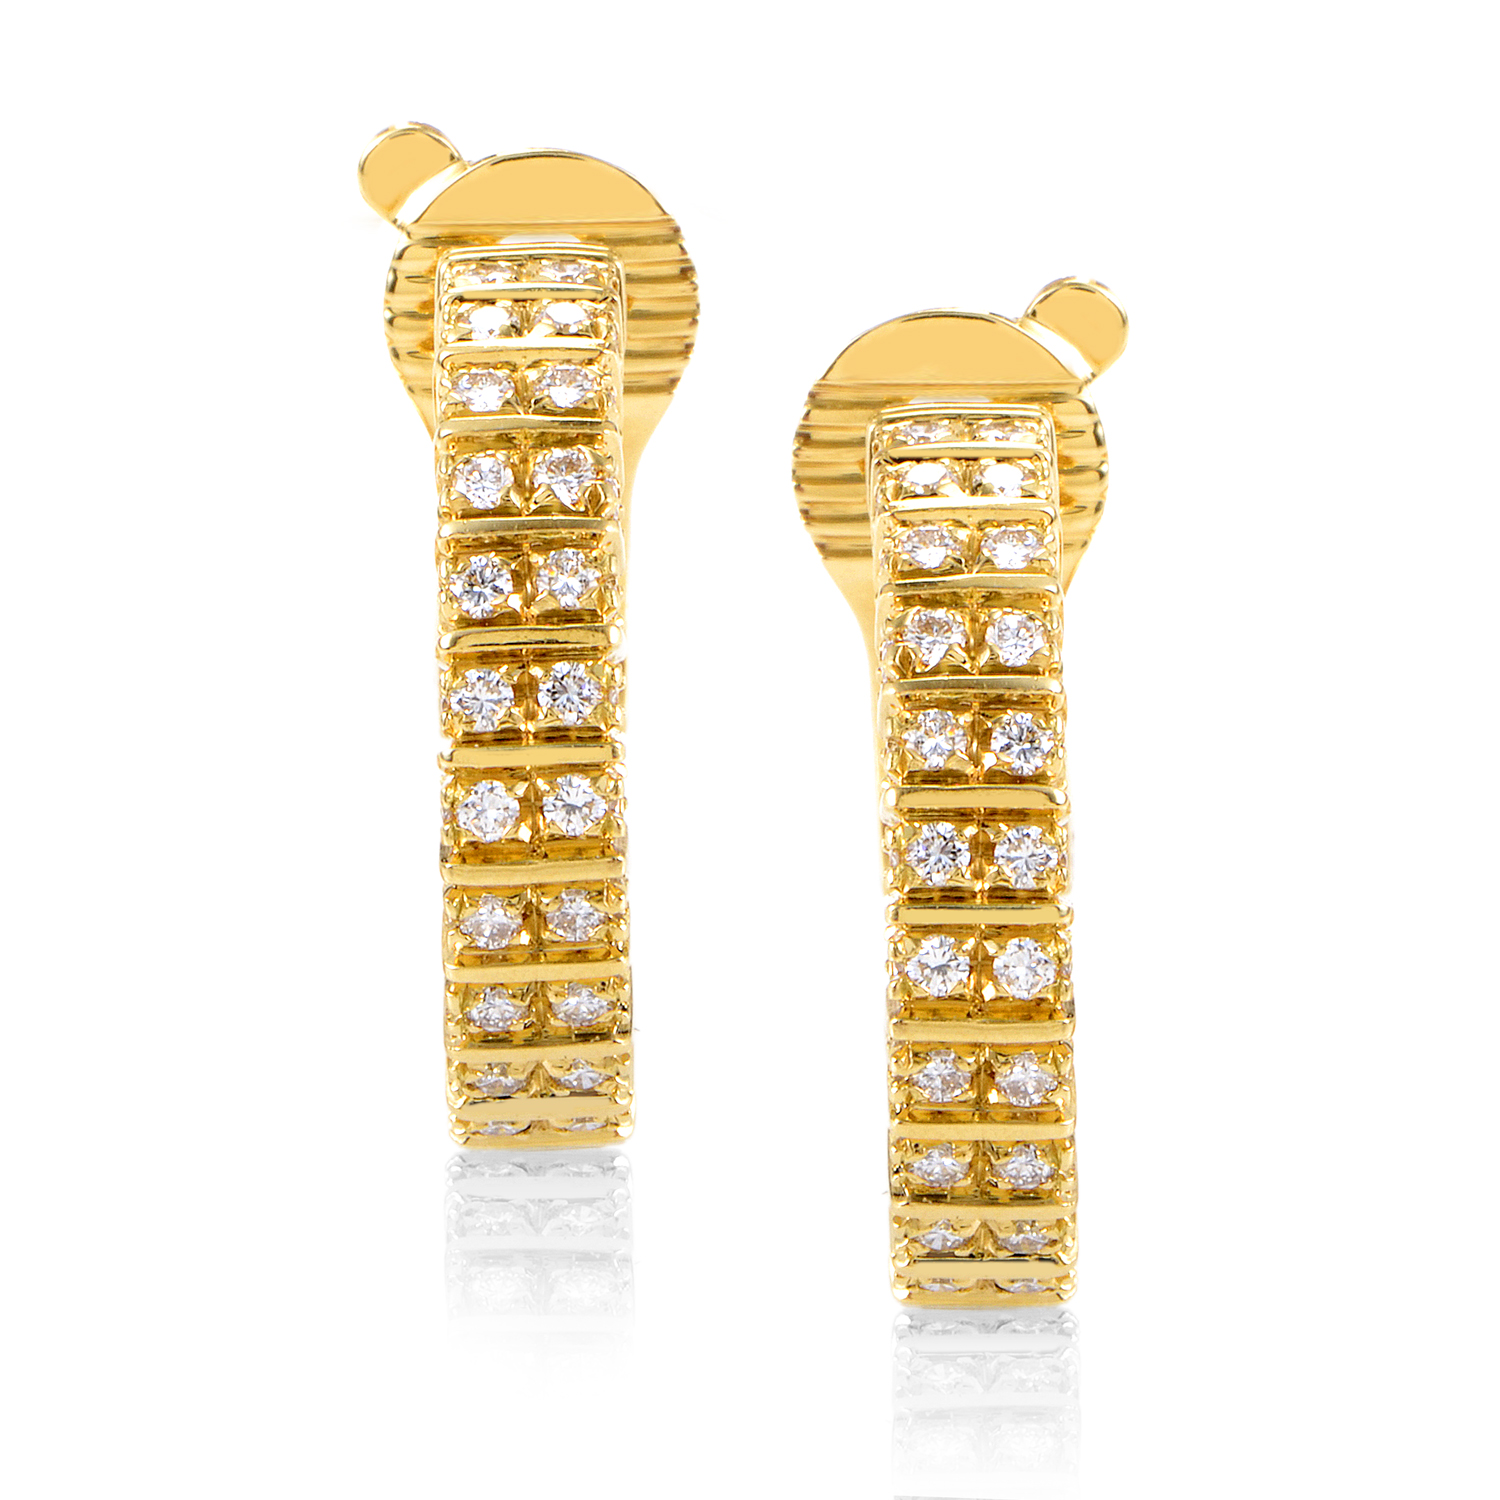 Boucheron Women's 18K Yellow Gold Diamond Hoop Earrings